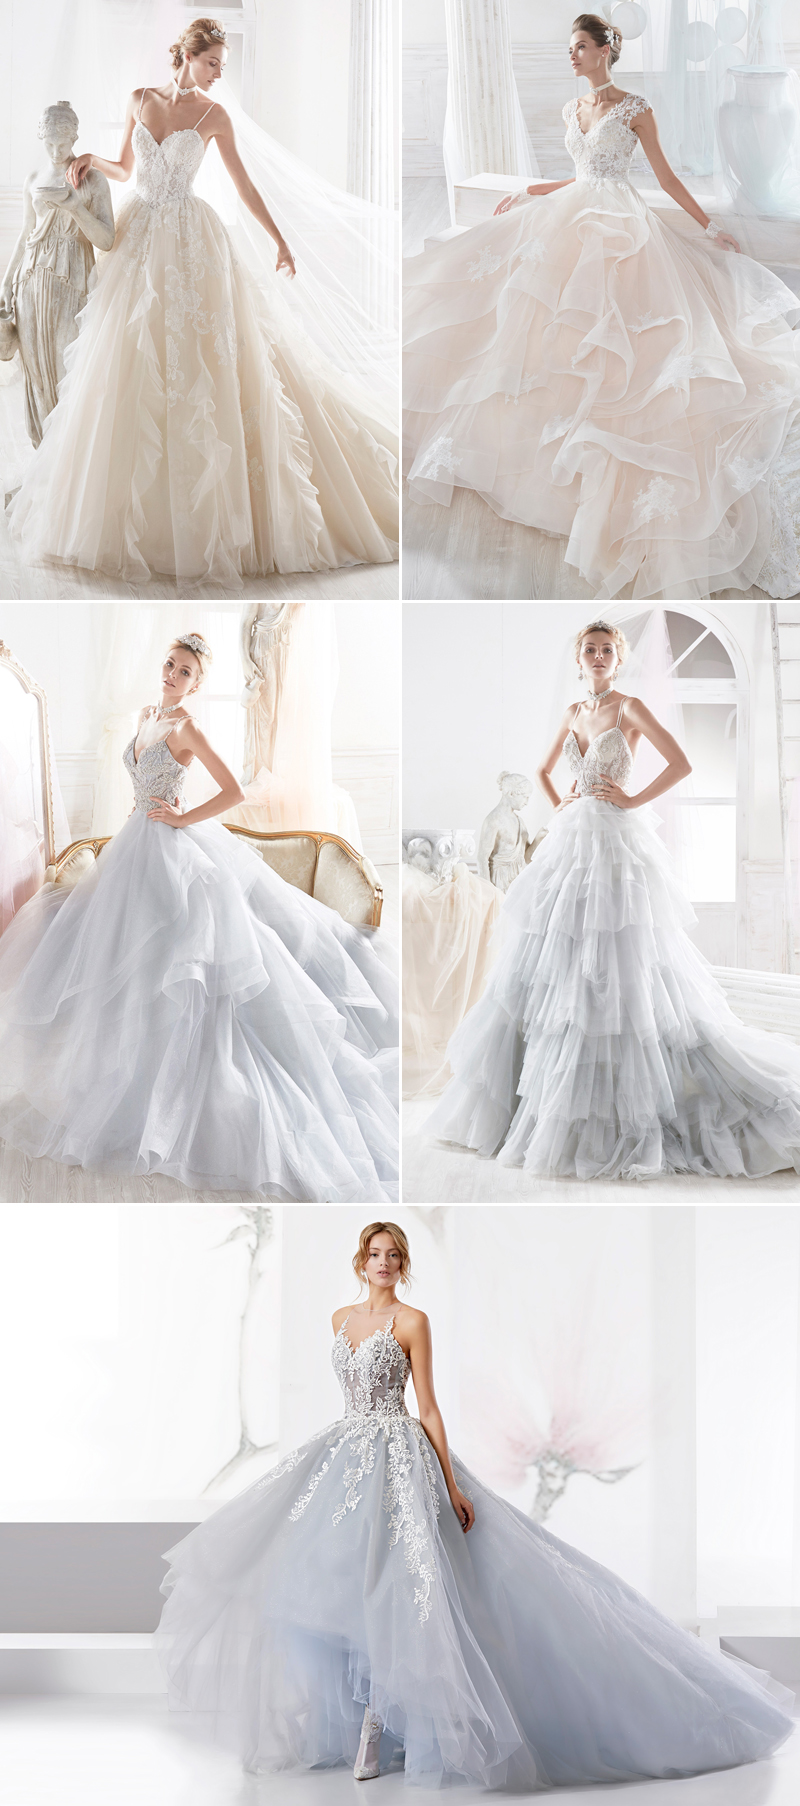 37 Jaw Droppingly Beautiful Gowns For A Ballroom Wedding